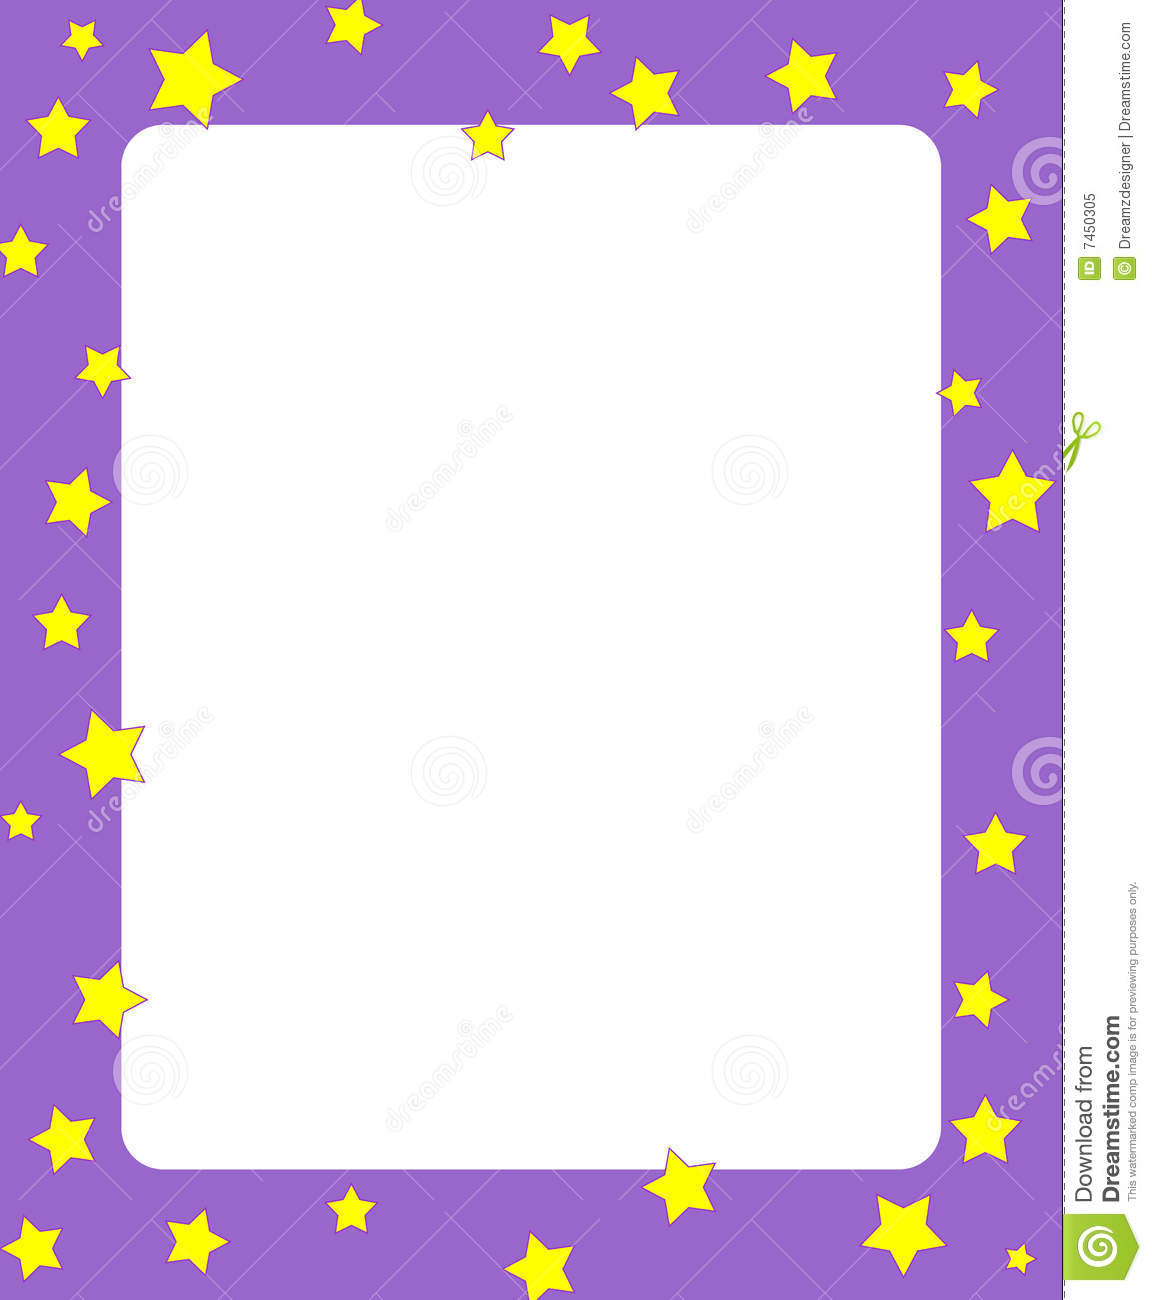 Stars border / frame stock vector. Image of christmas ...